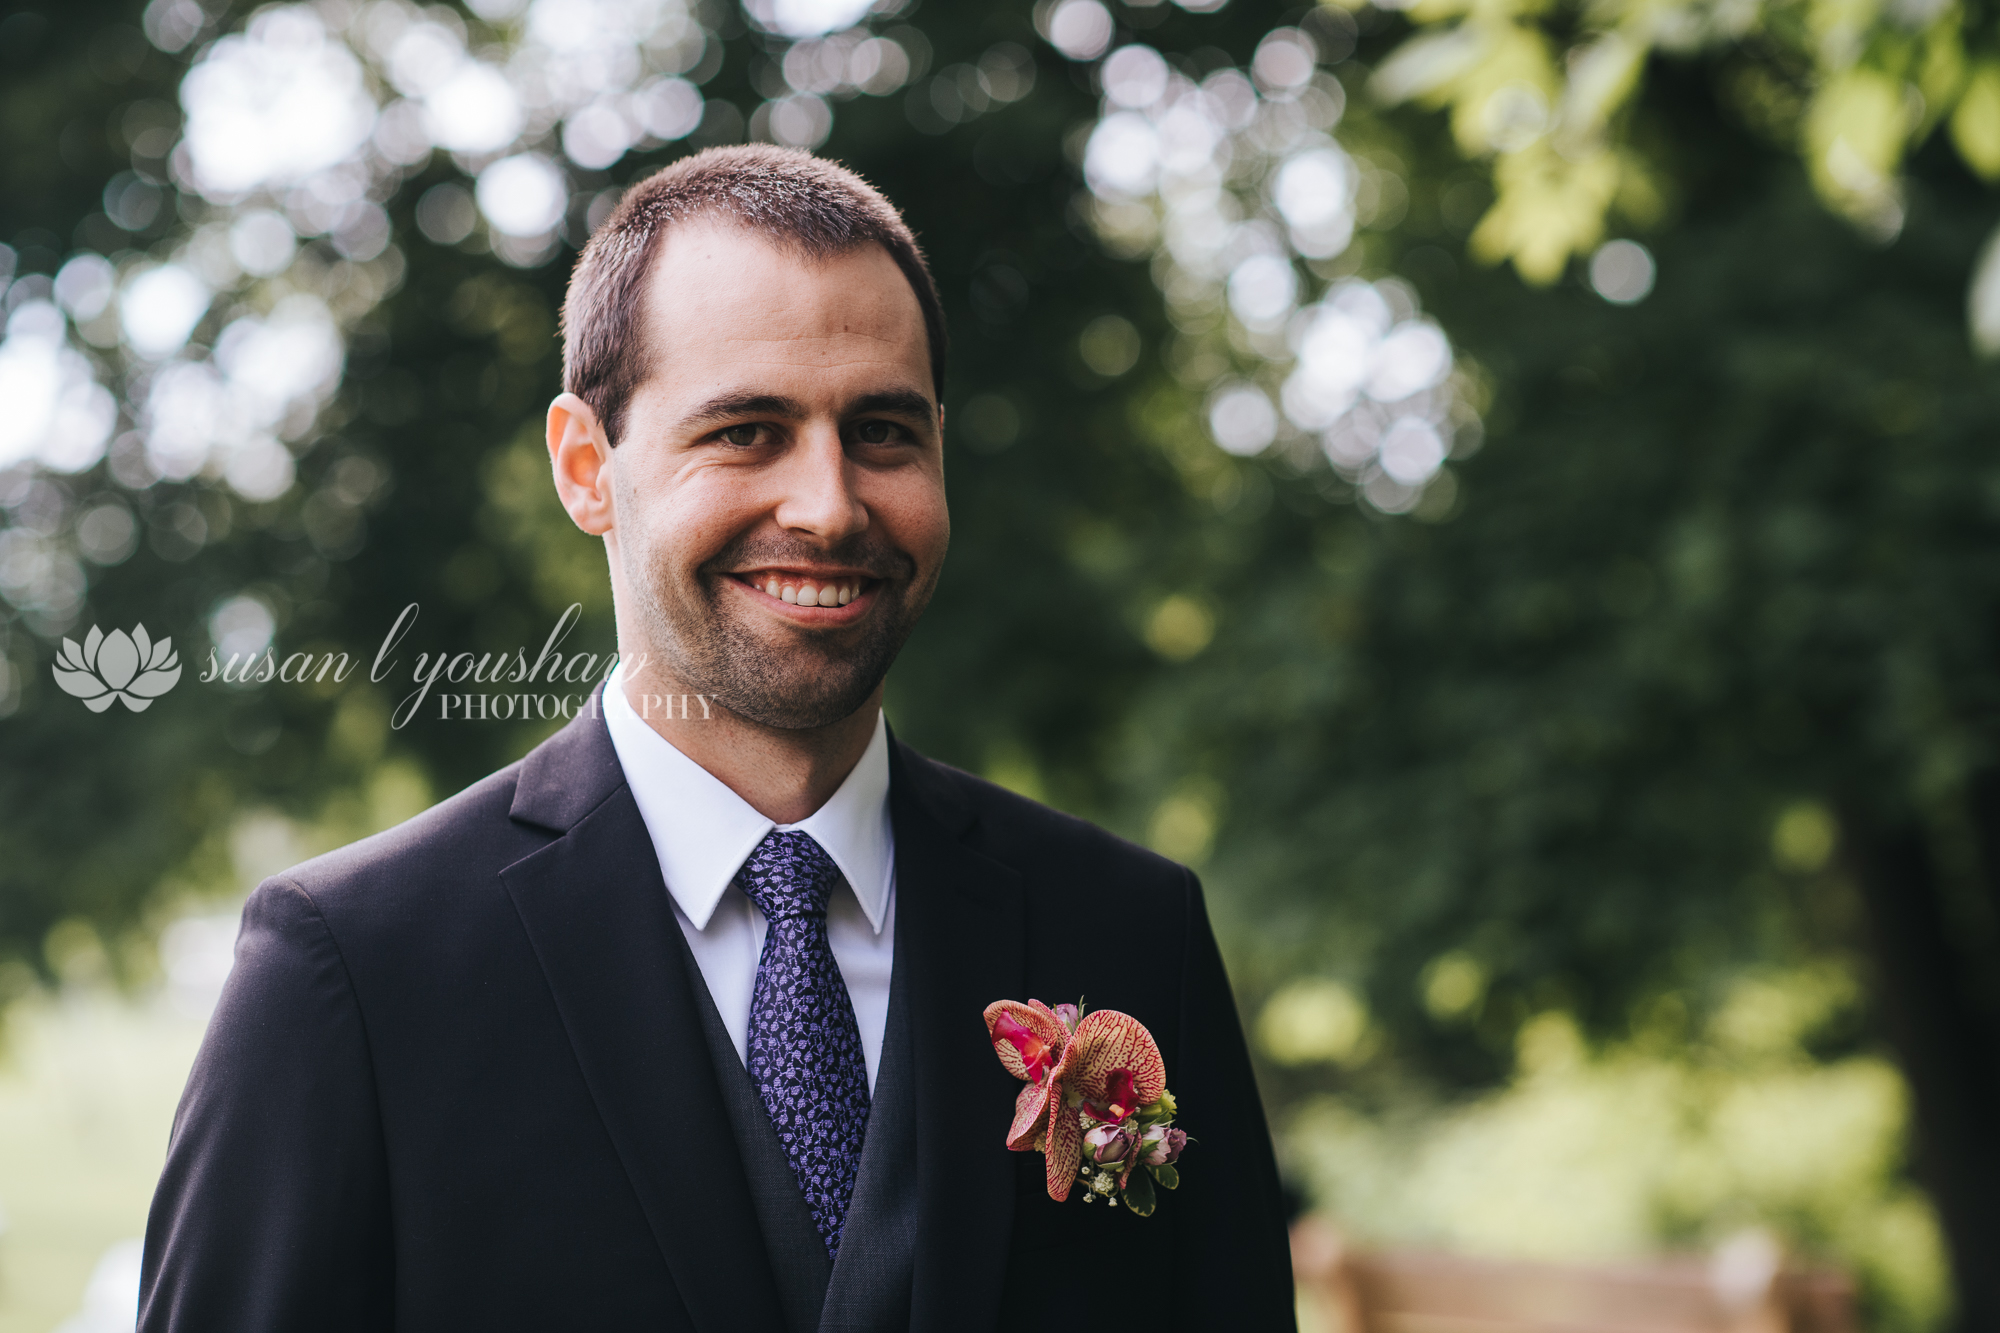 Adena and  Erik Wedding 05-17-2019 SLY Photography-14.jpg